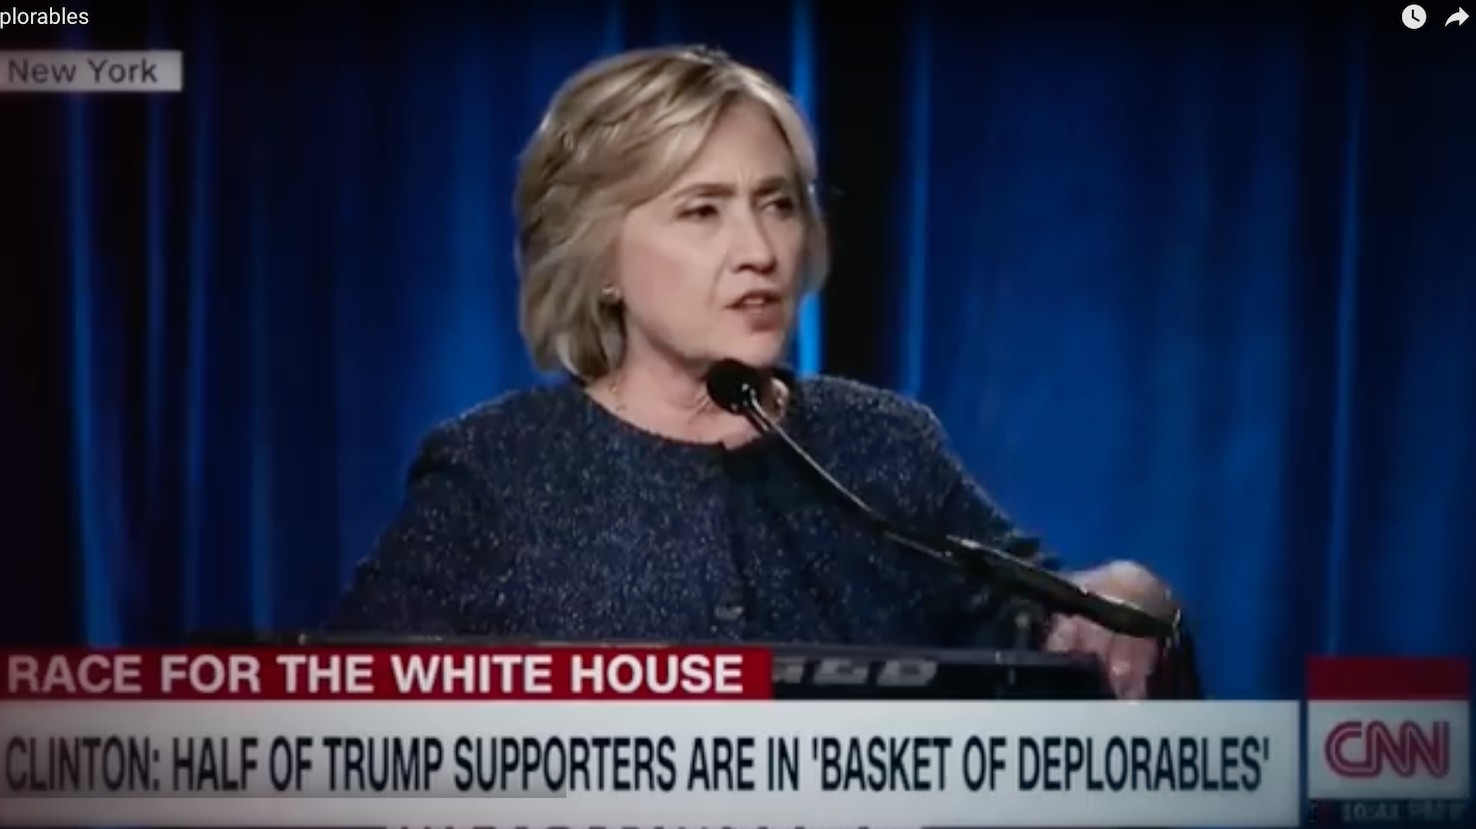 Trump puts $2 million behind ad attacking Clinton's 'basket of deplorables' comment